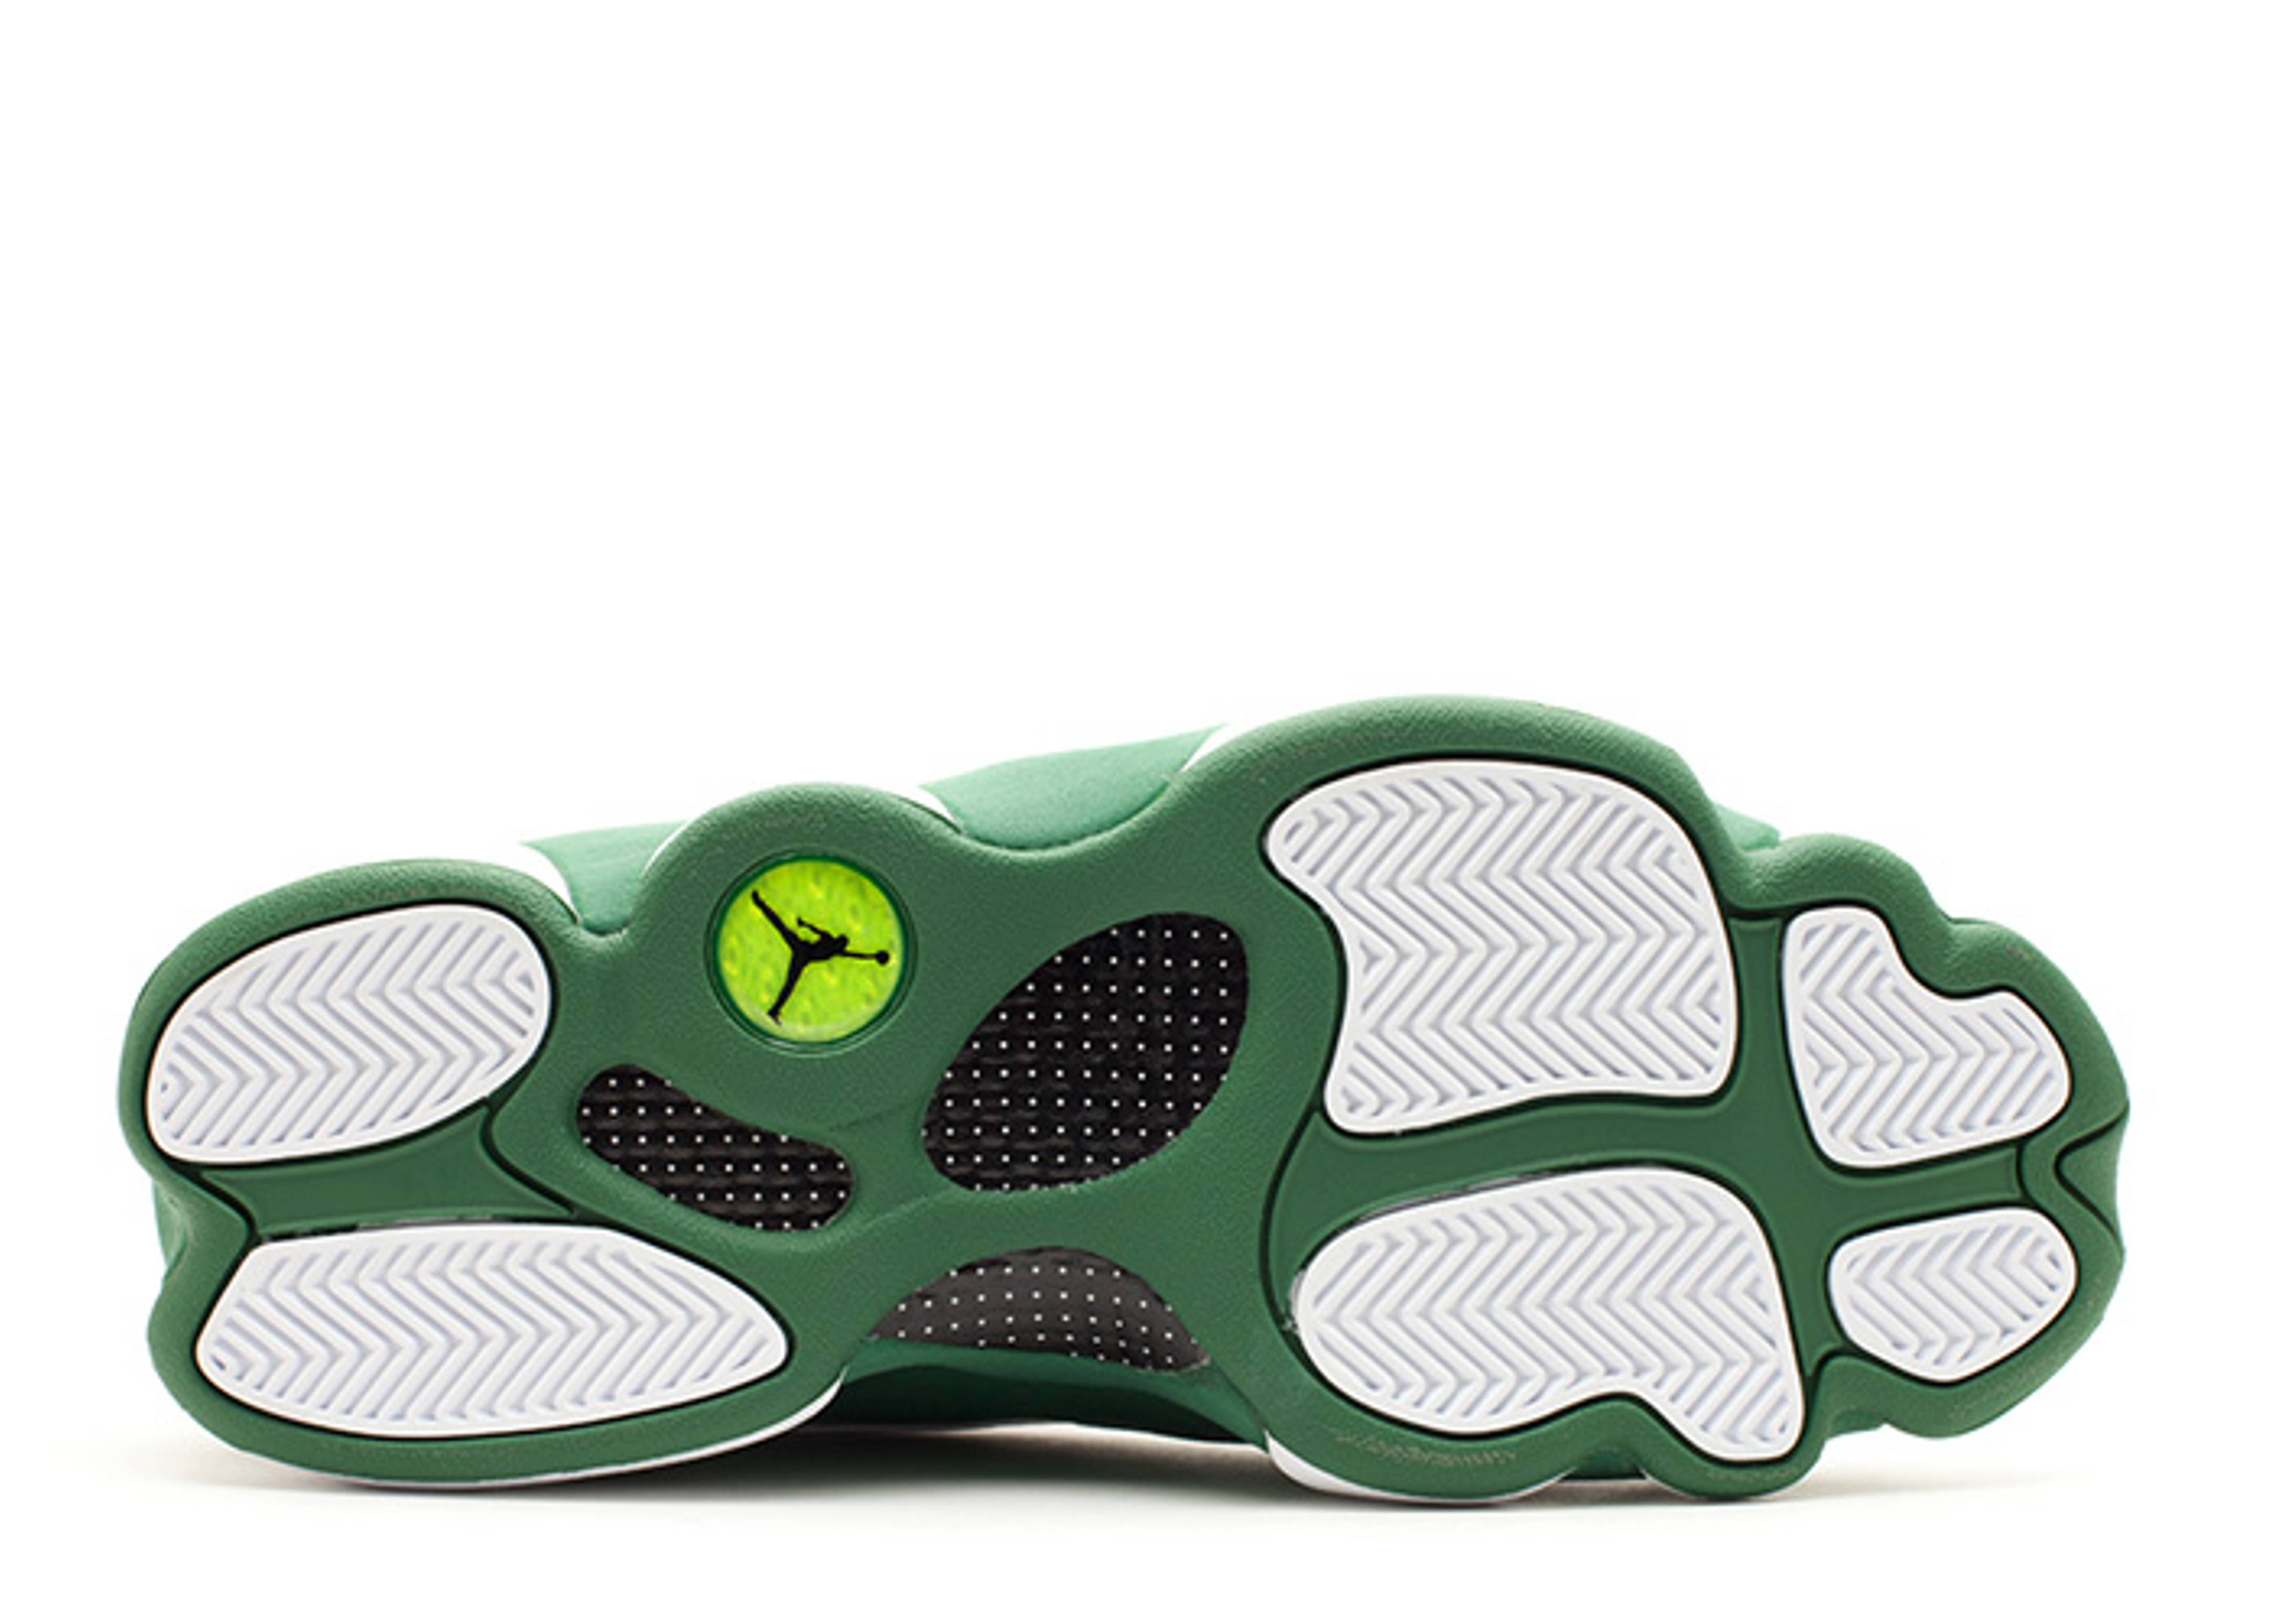 huge selection of 559af dae80 Air Jordan 13 Retro